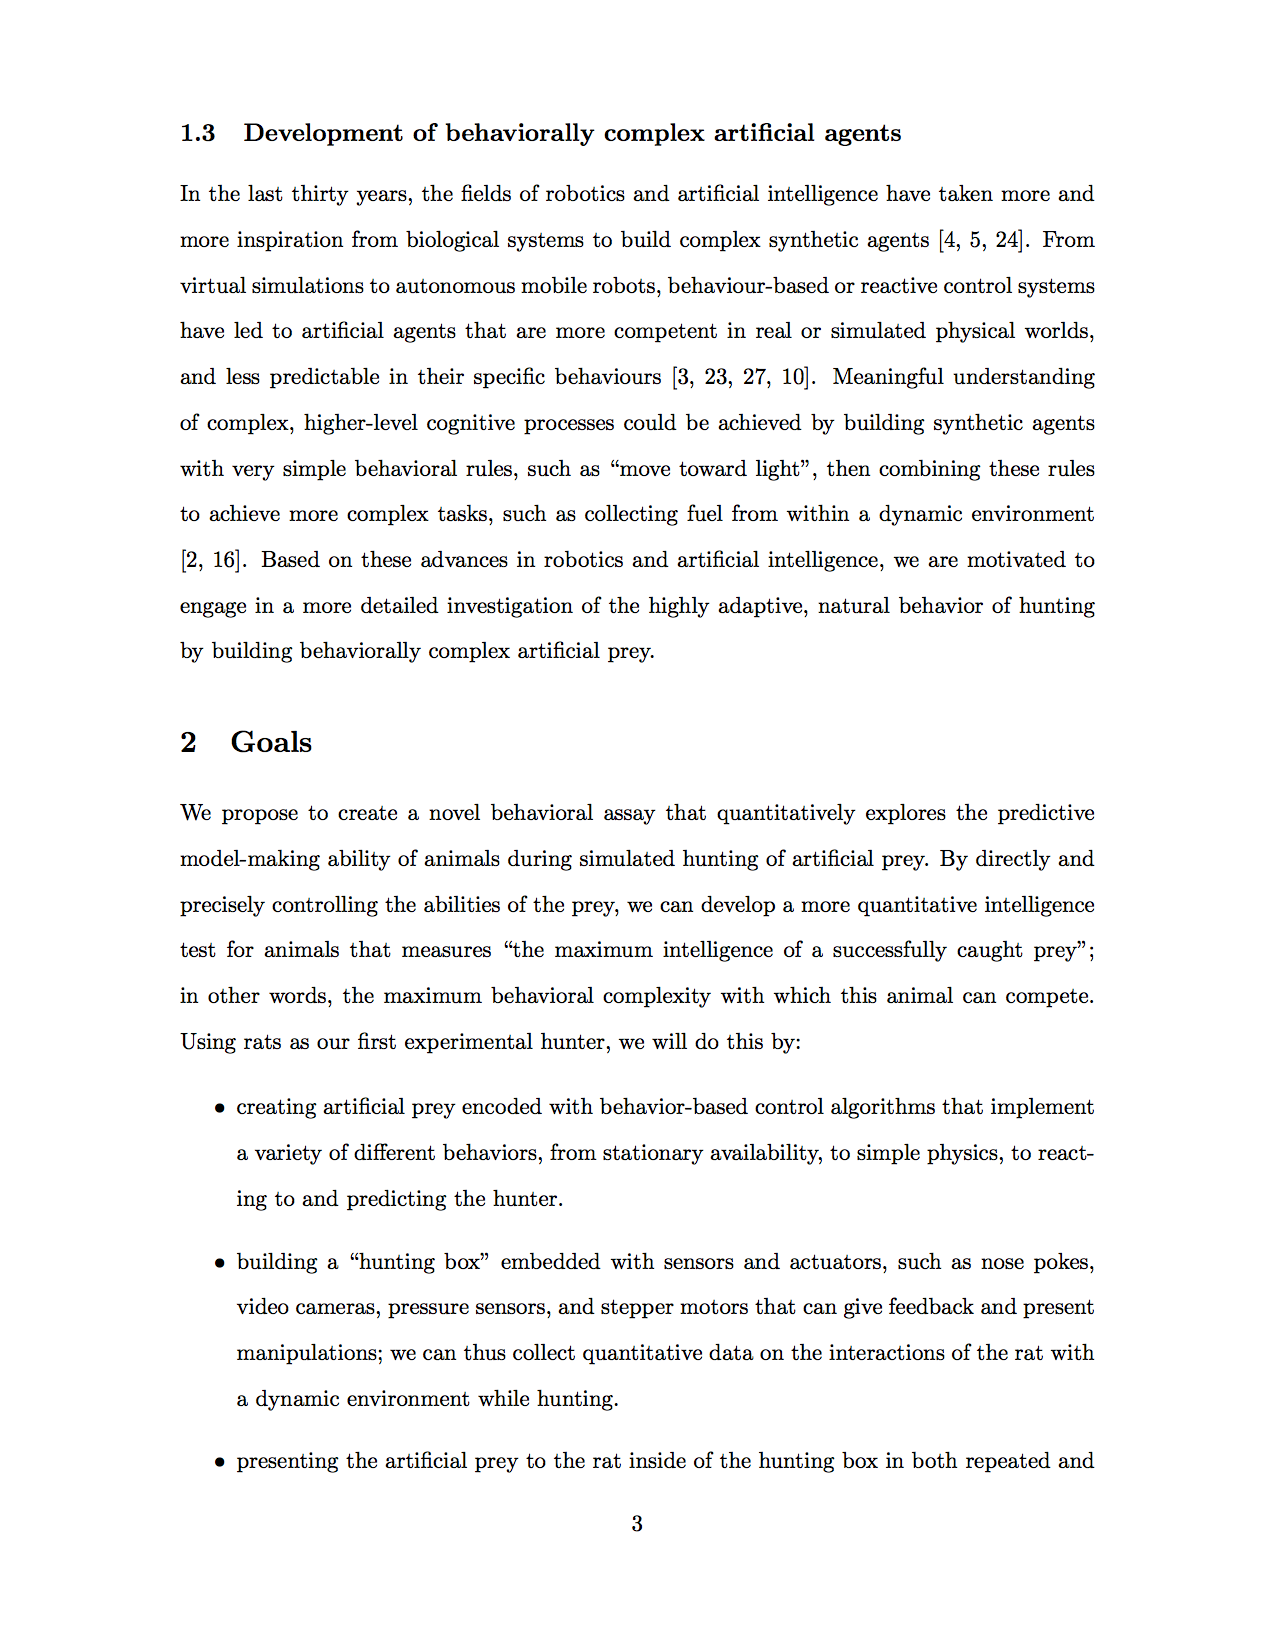 PhD thesis proposal, page 03